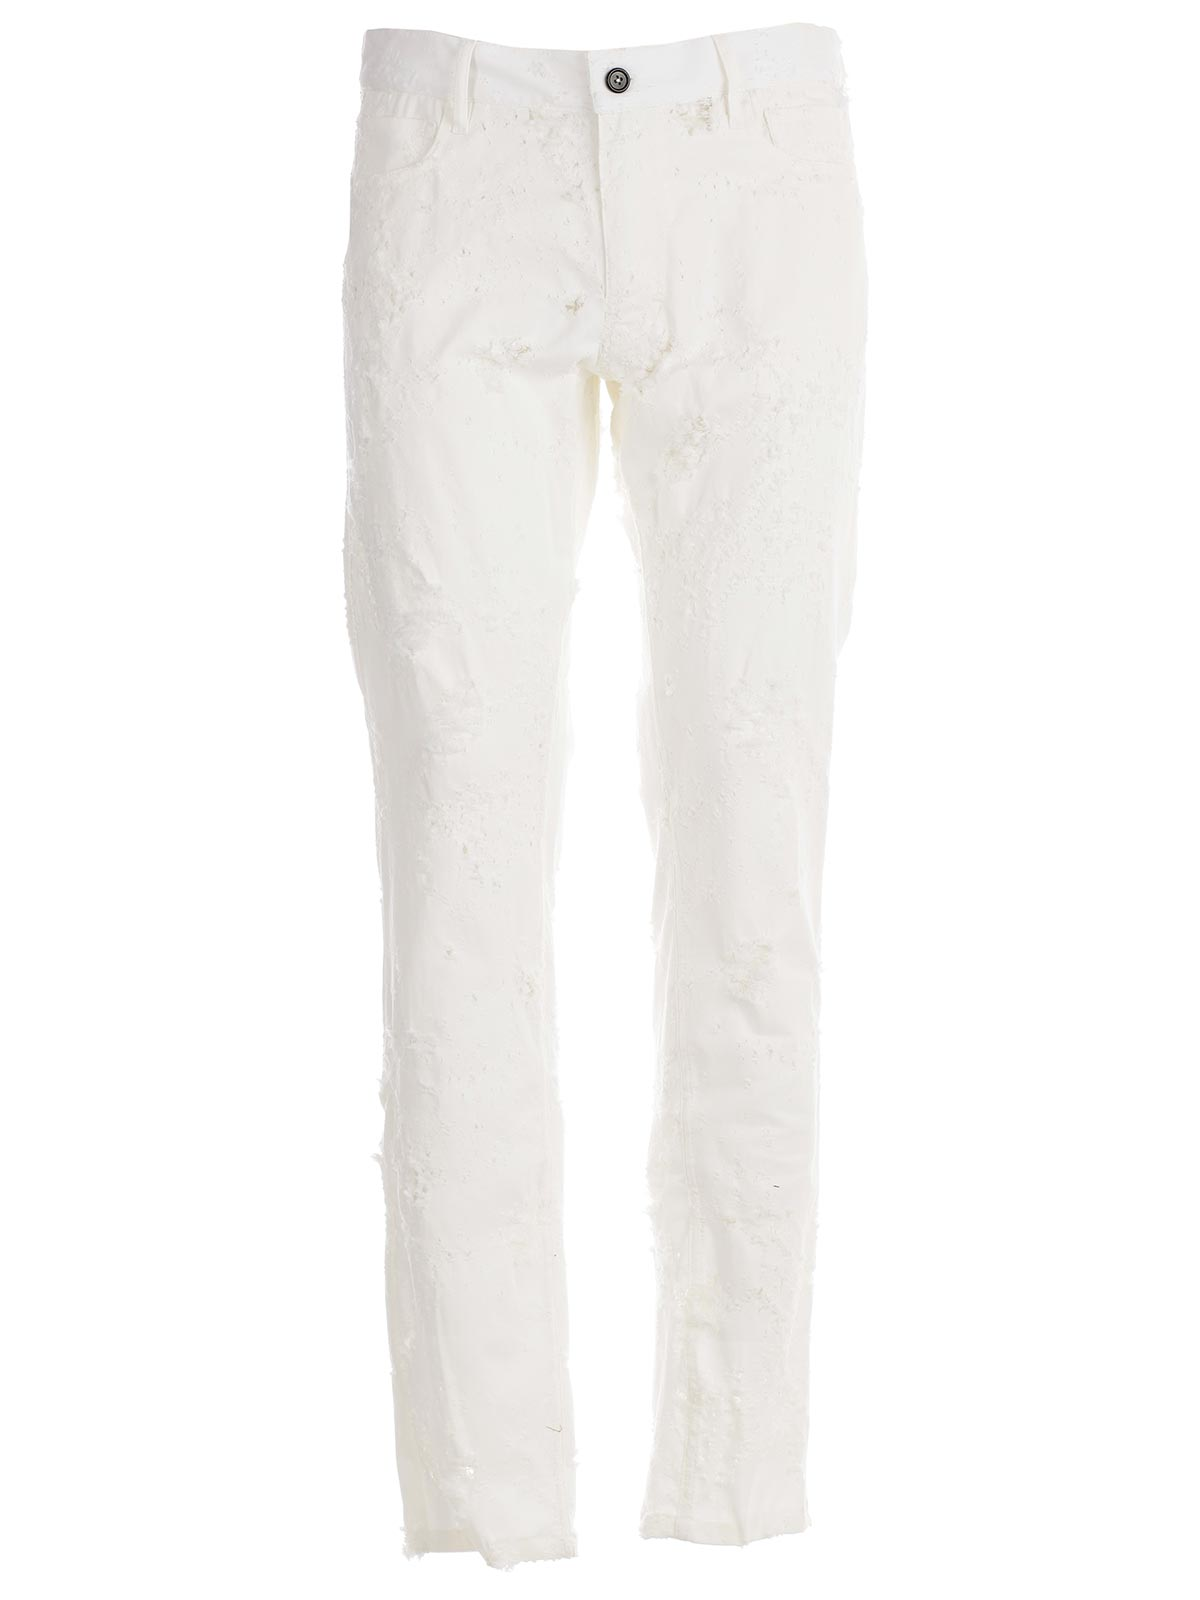 Picture of Ann Demeulemester Jeans